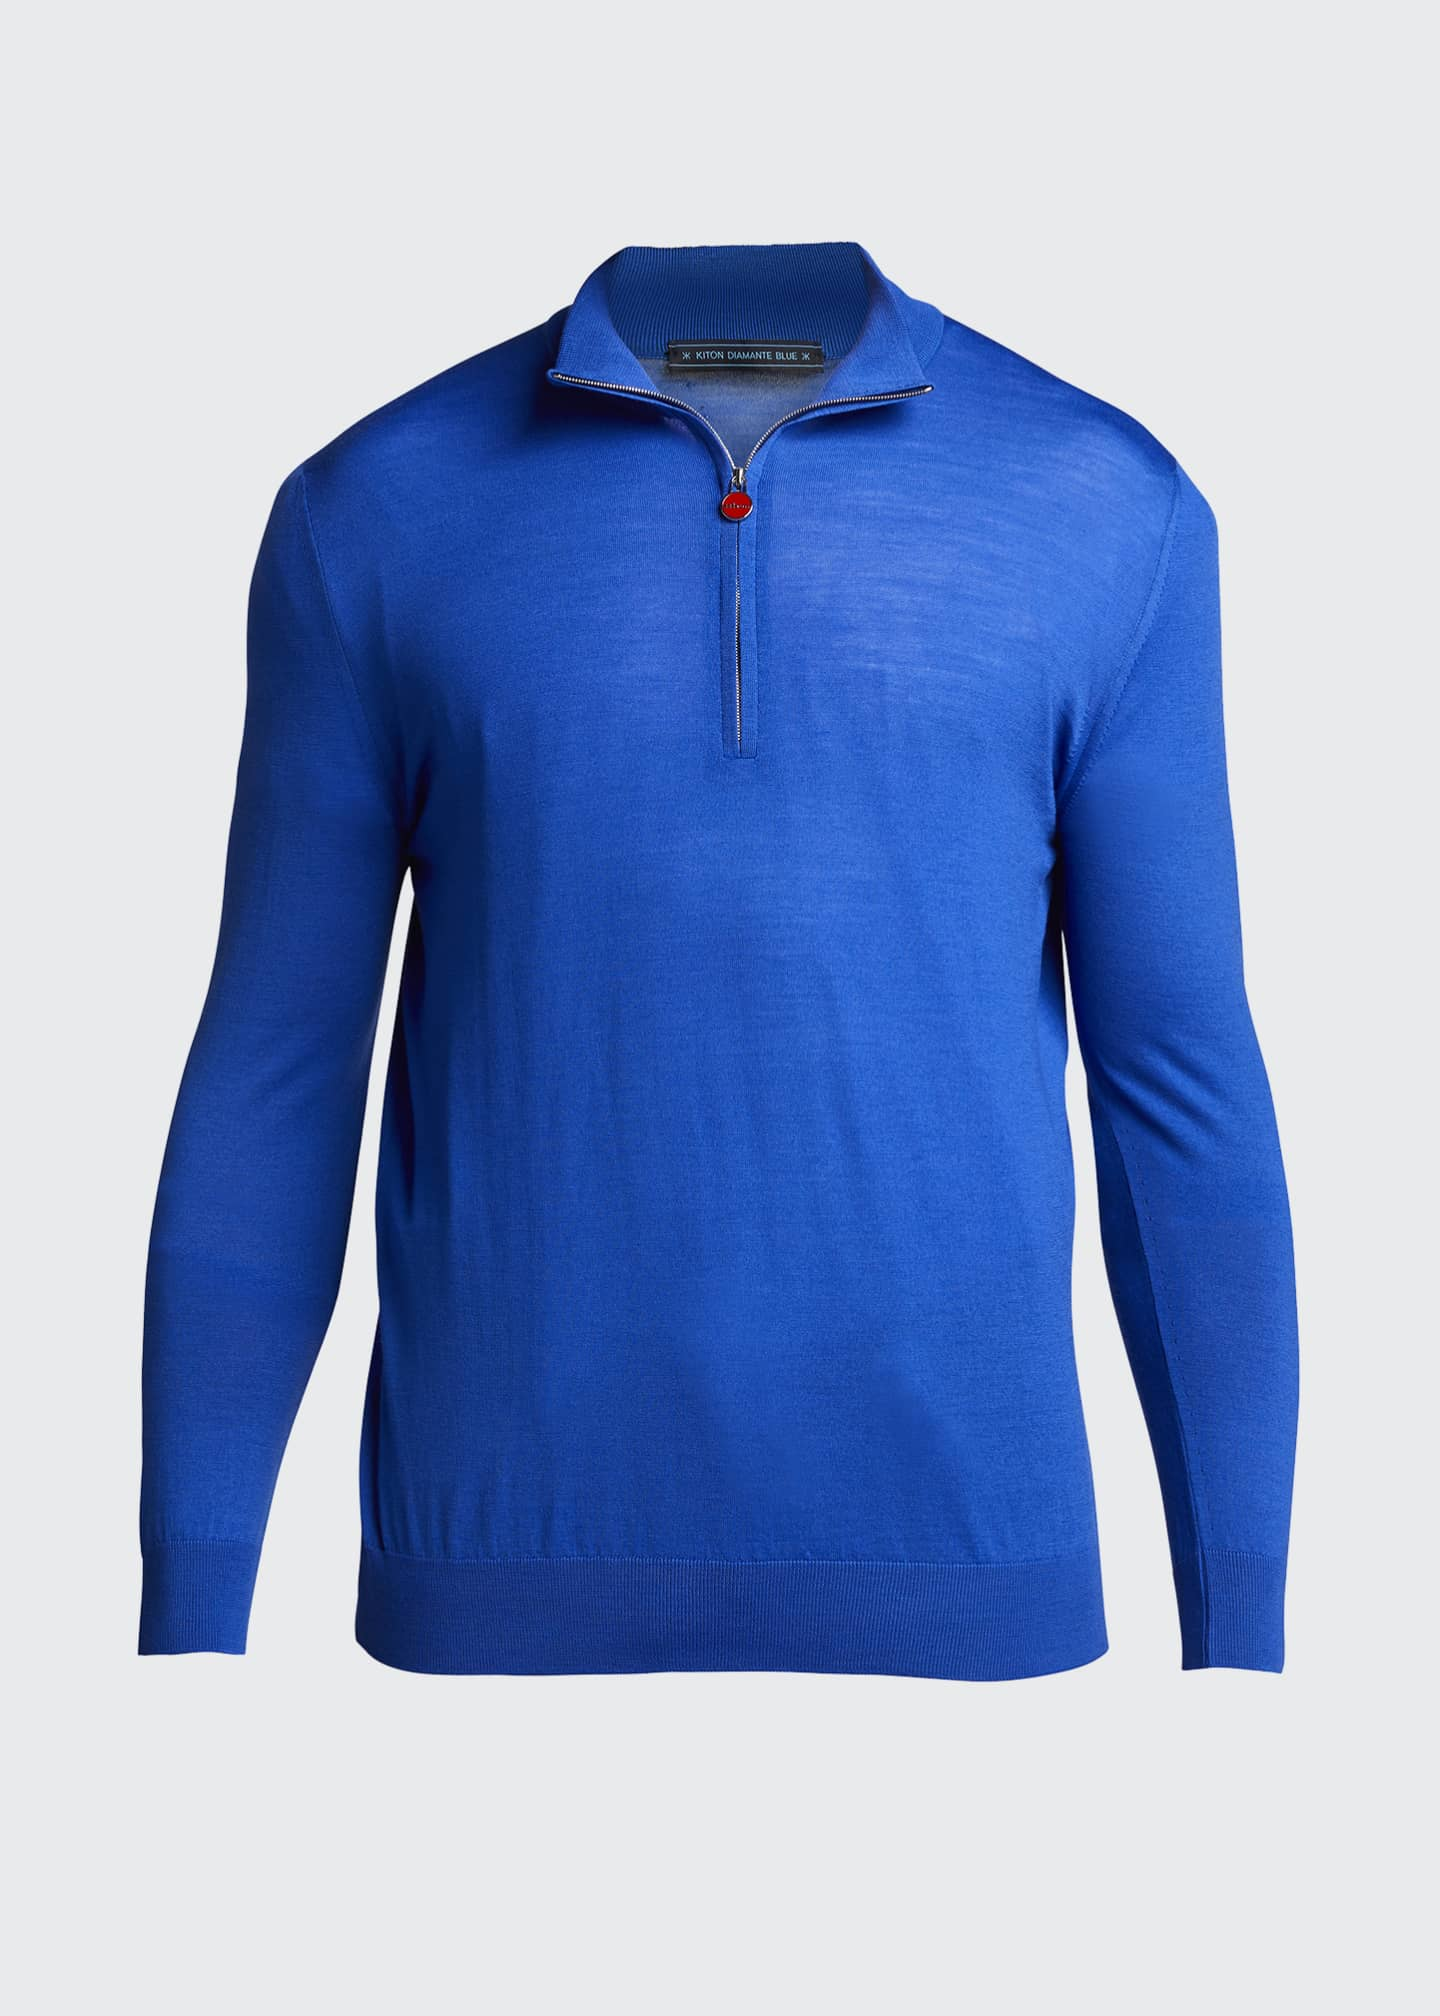 Image 5 of 5: Men's Quarter-Zip Wool Sweater